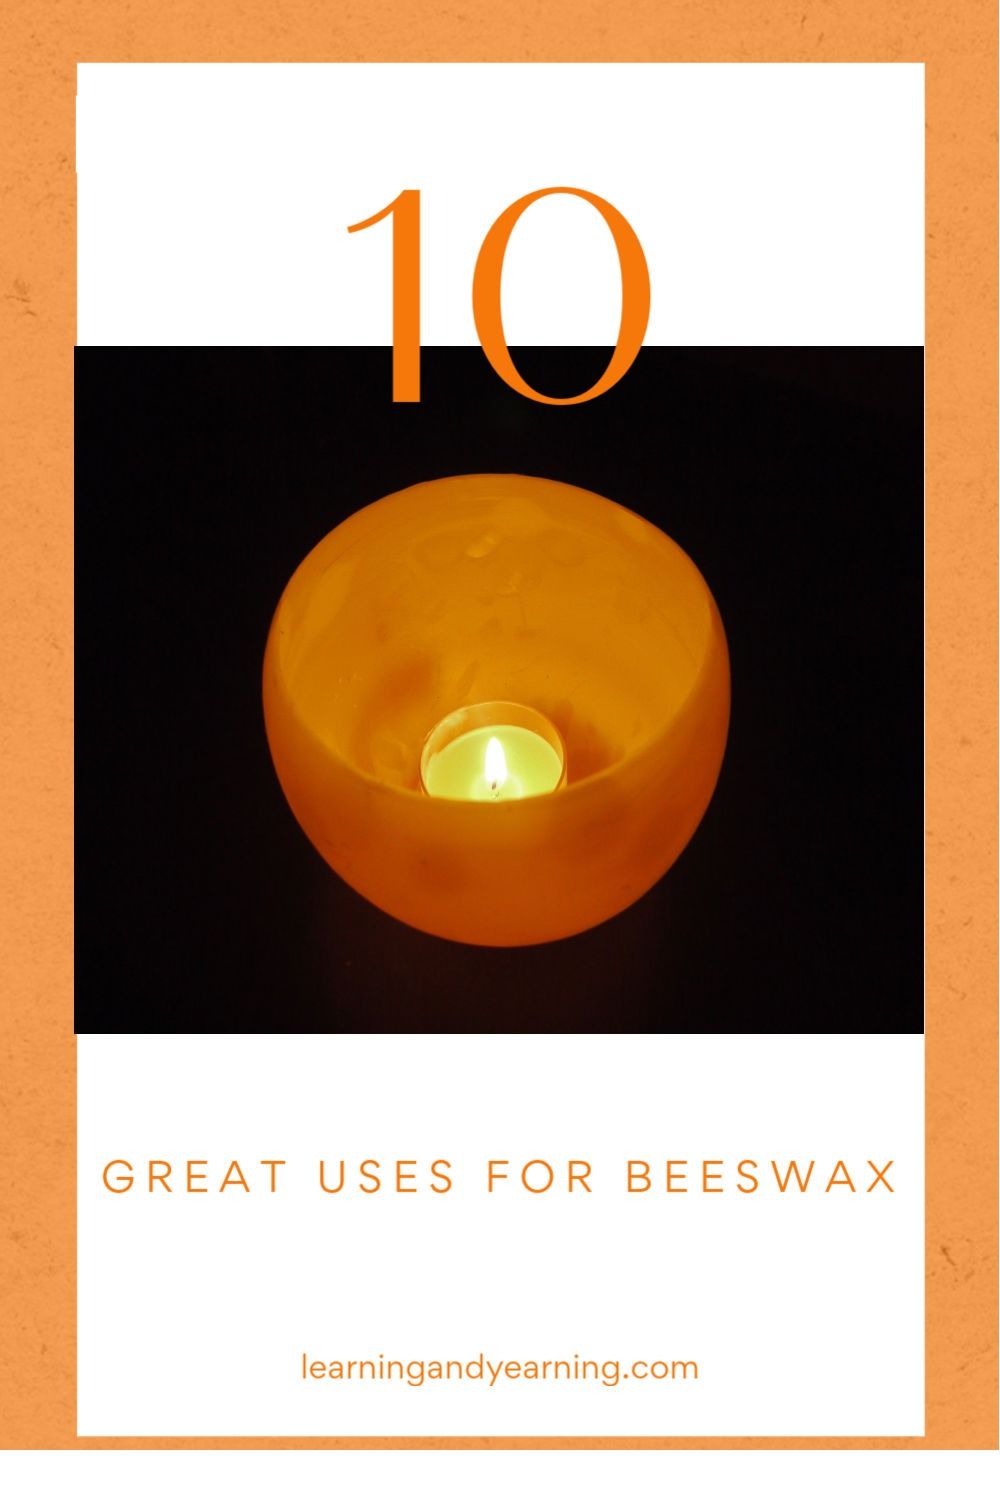 10 great uses for beeswax.